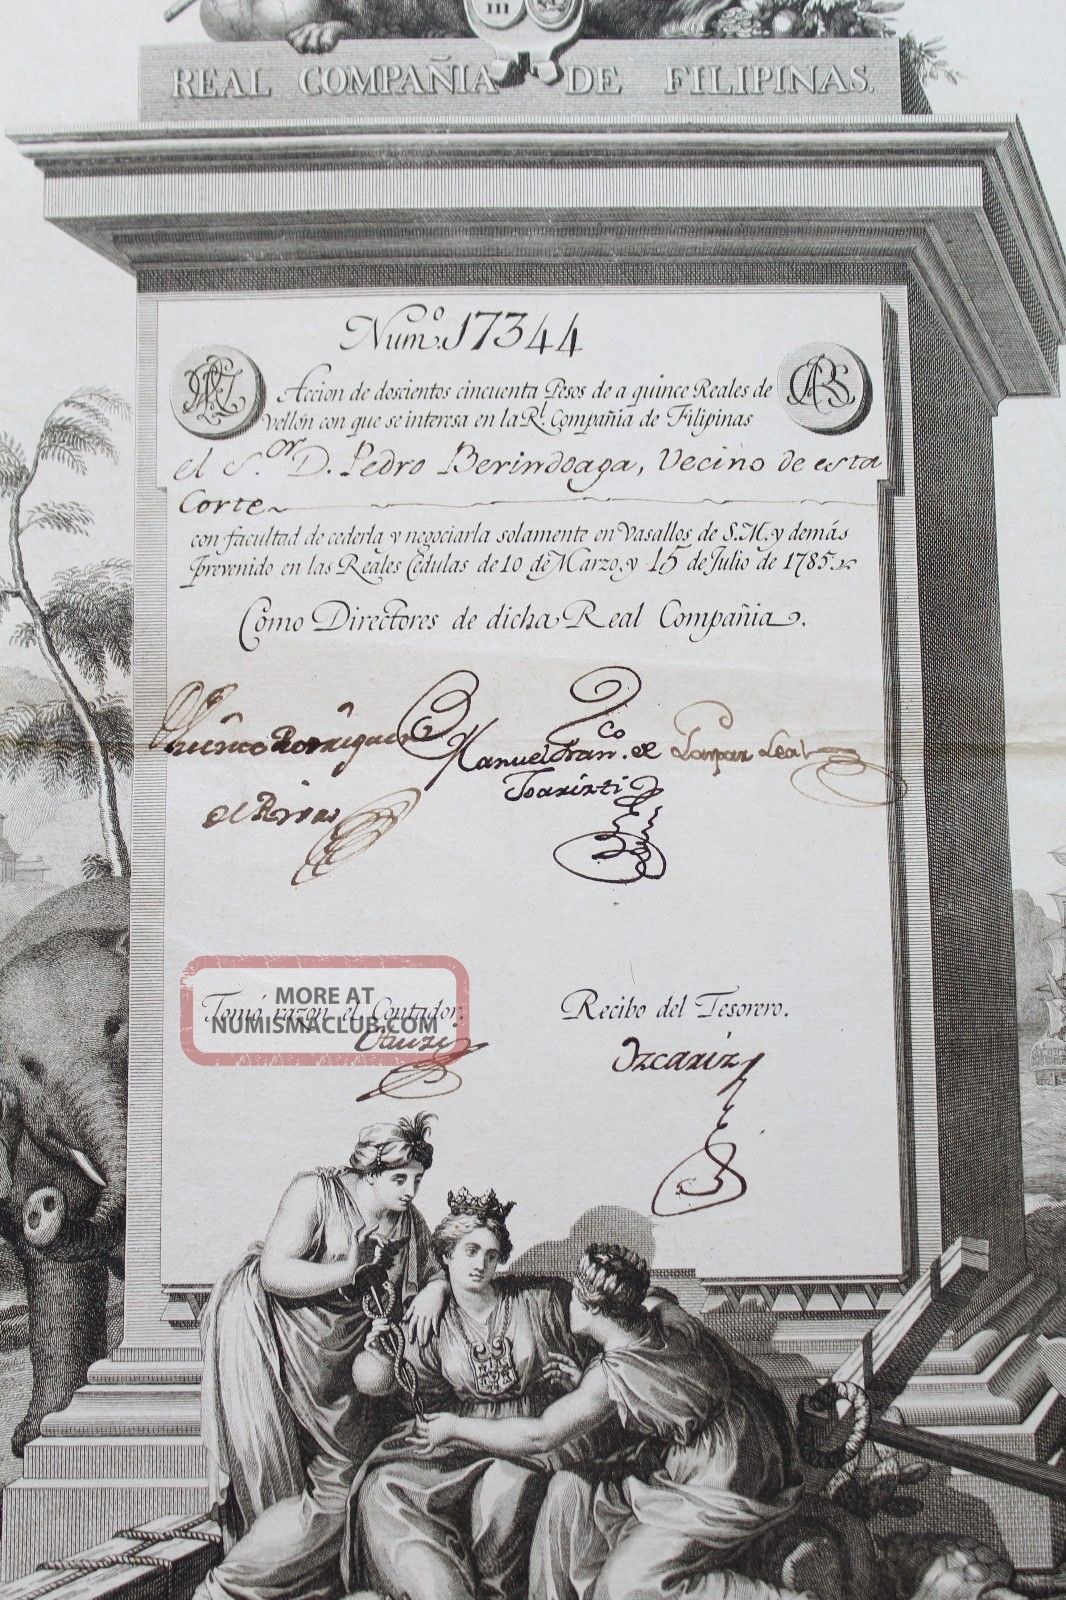 1785 Spanish Share - Philippines Royal Company - Real CompaÑia De Filipinas World photo